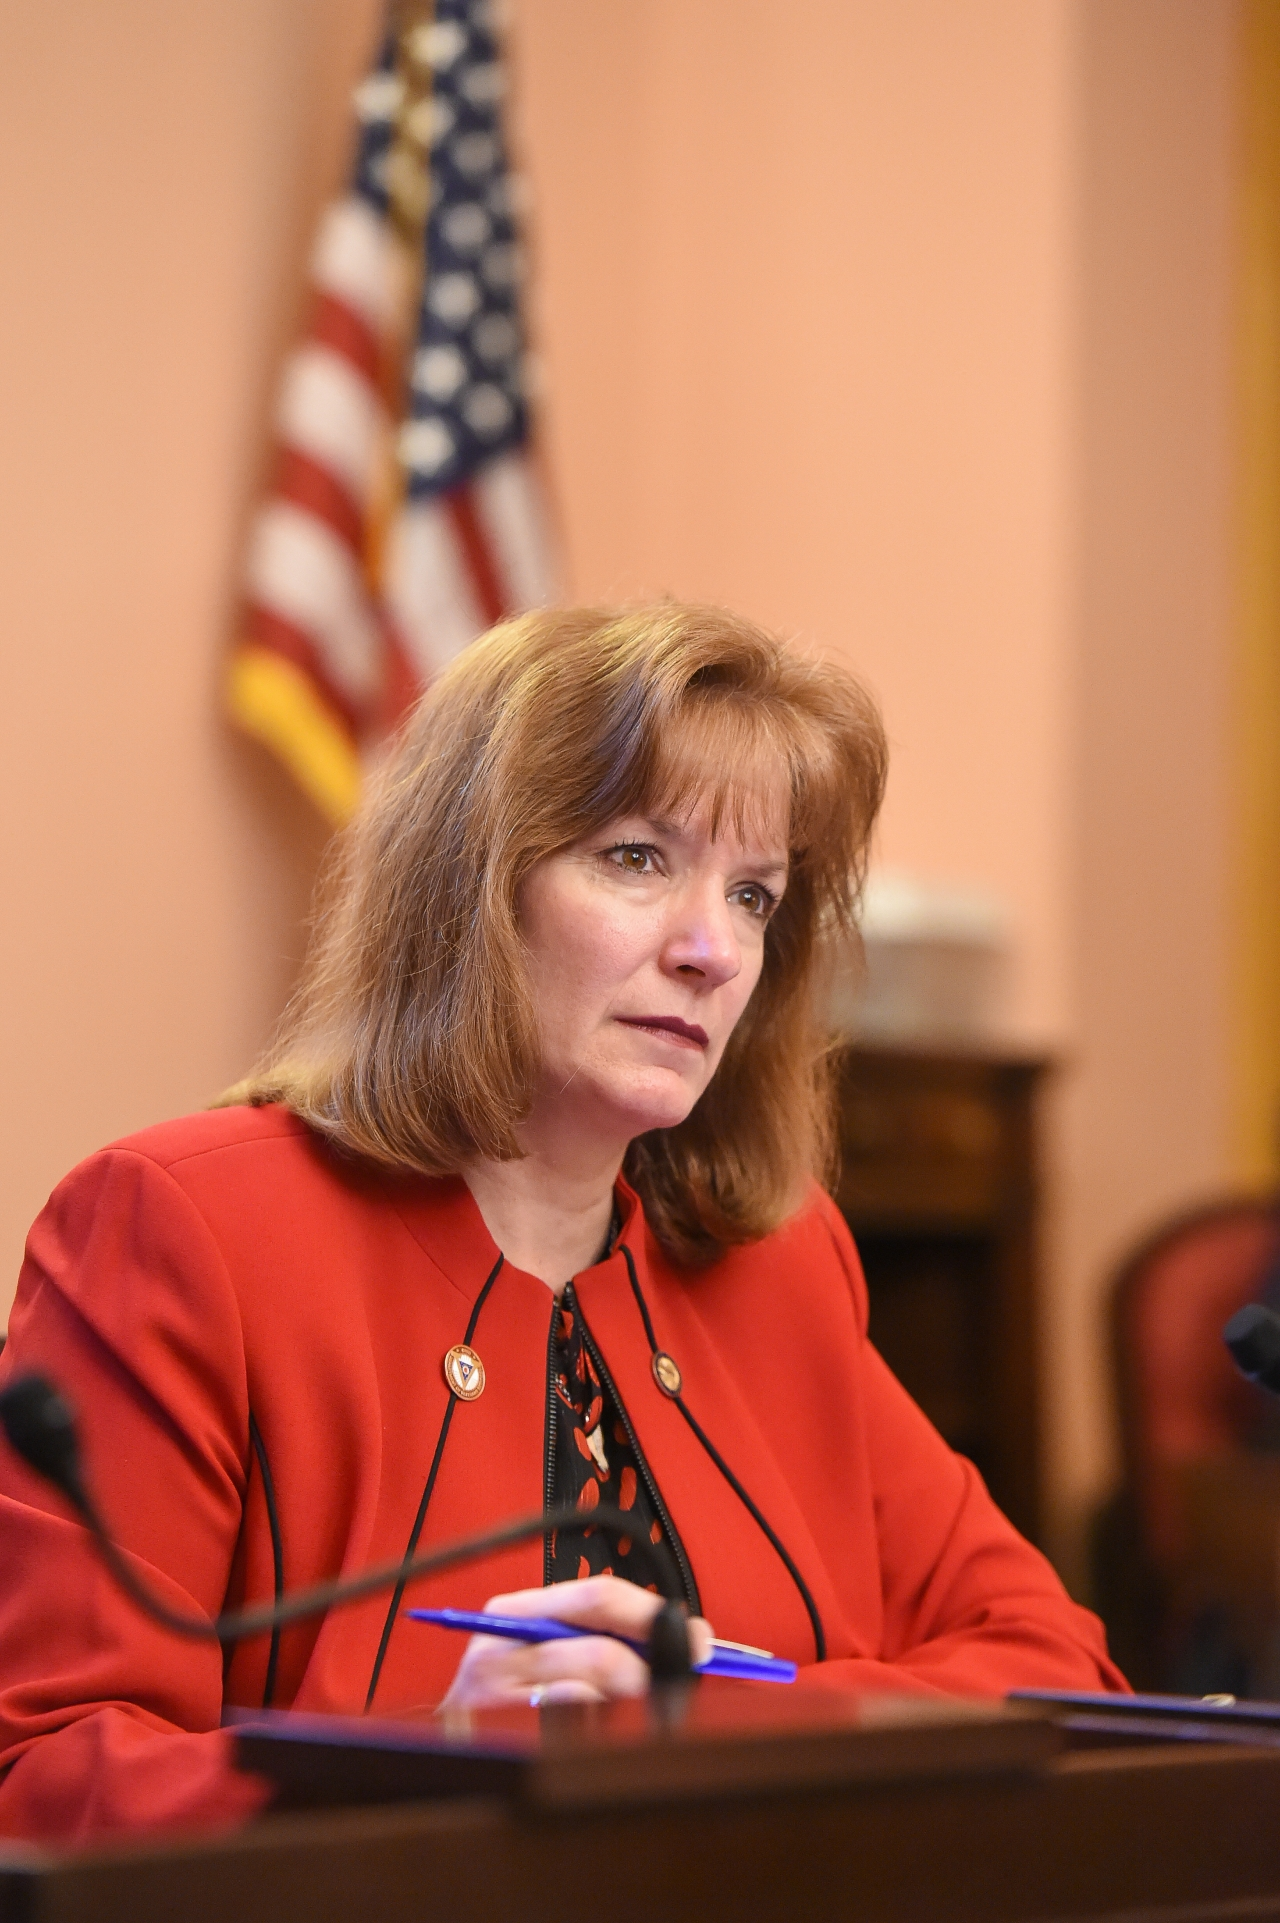 Testimony Given in Support of Suicide Education Bills